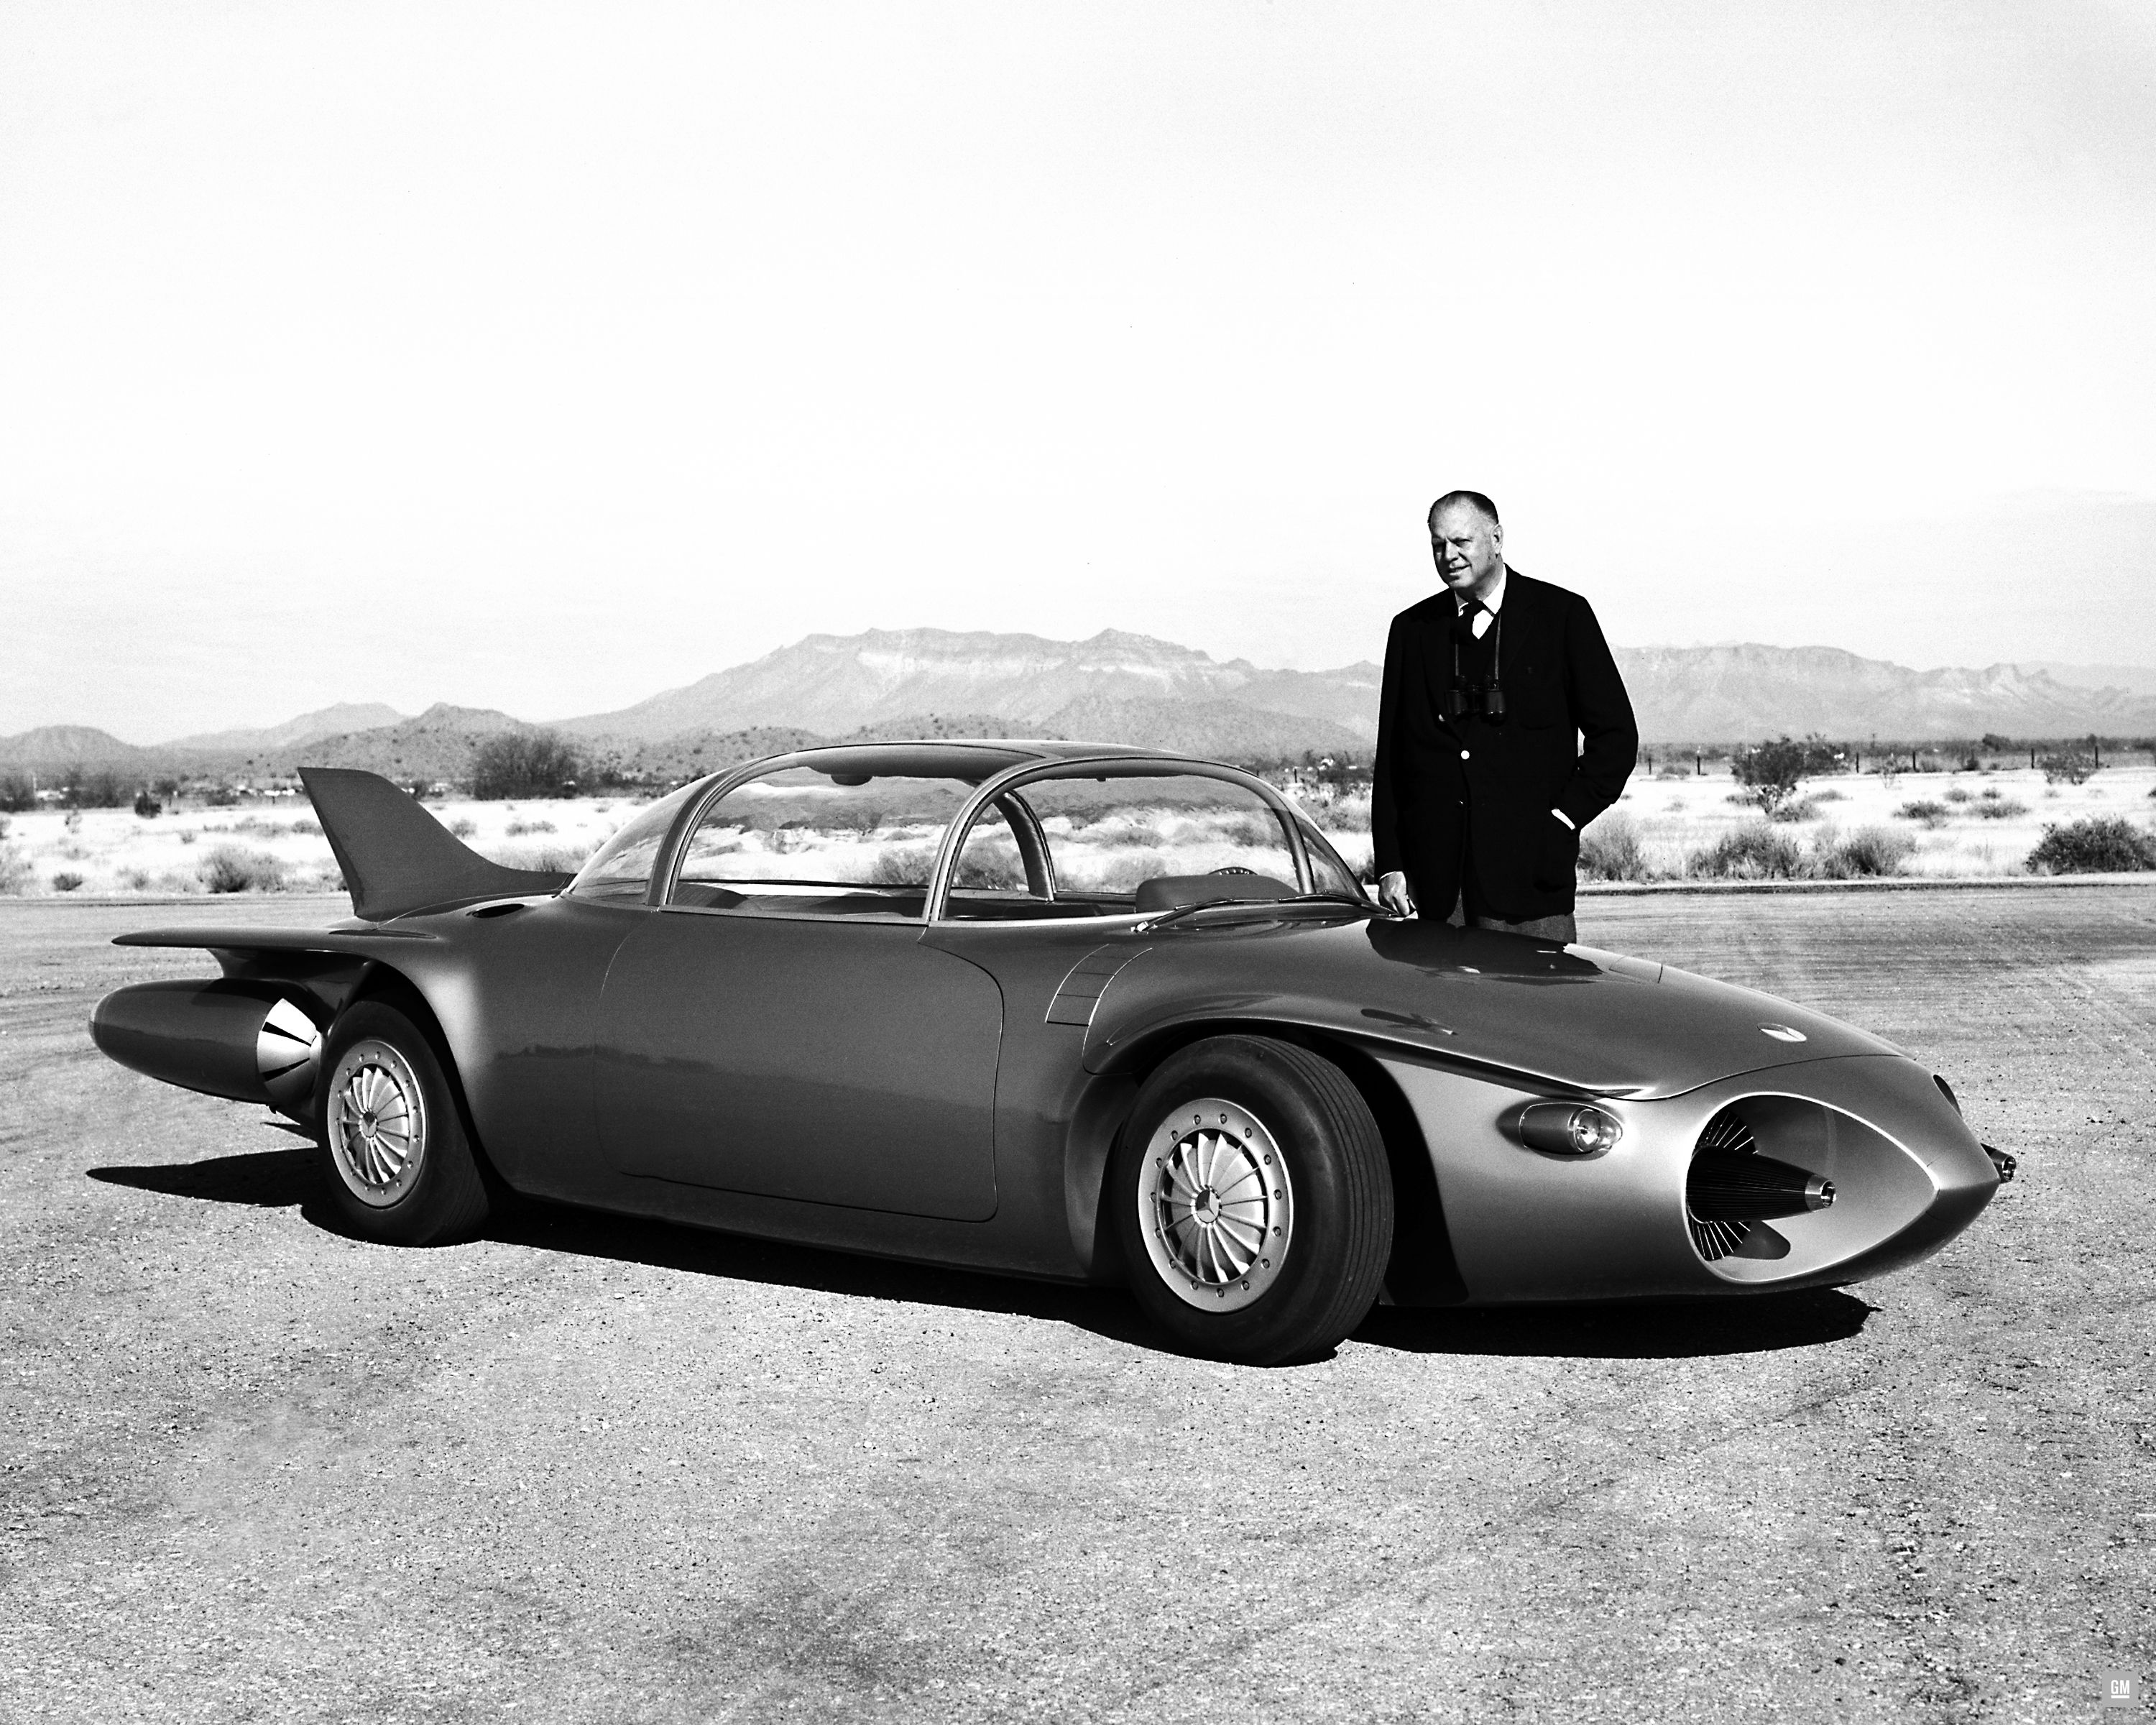 Gms Turbine Powered Firebird Concept Cars Of The 1950s 1950 Pontiac Trans Am